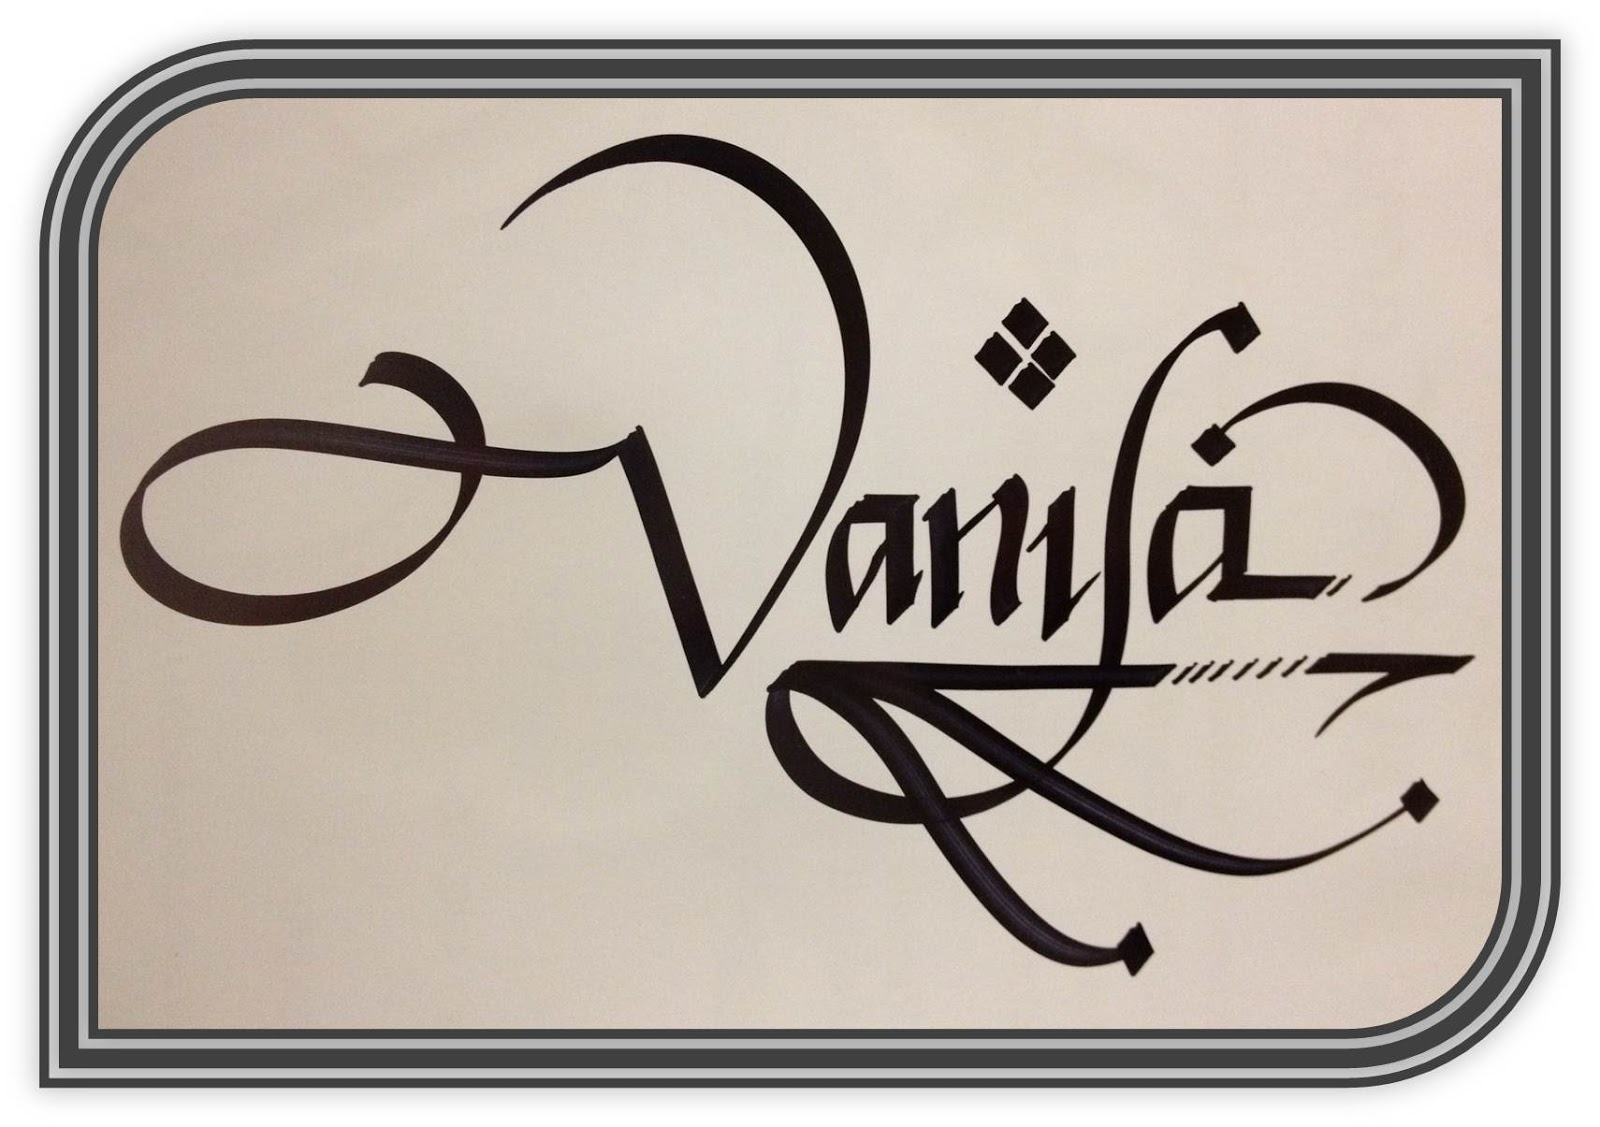 Calligraphy art russian names in calligraphy vanya My name in calligraphy